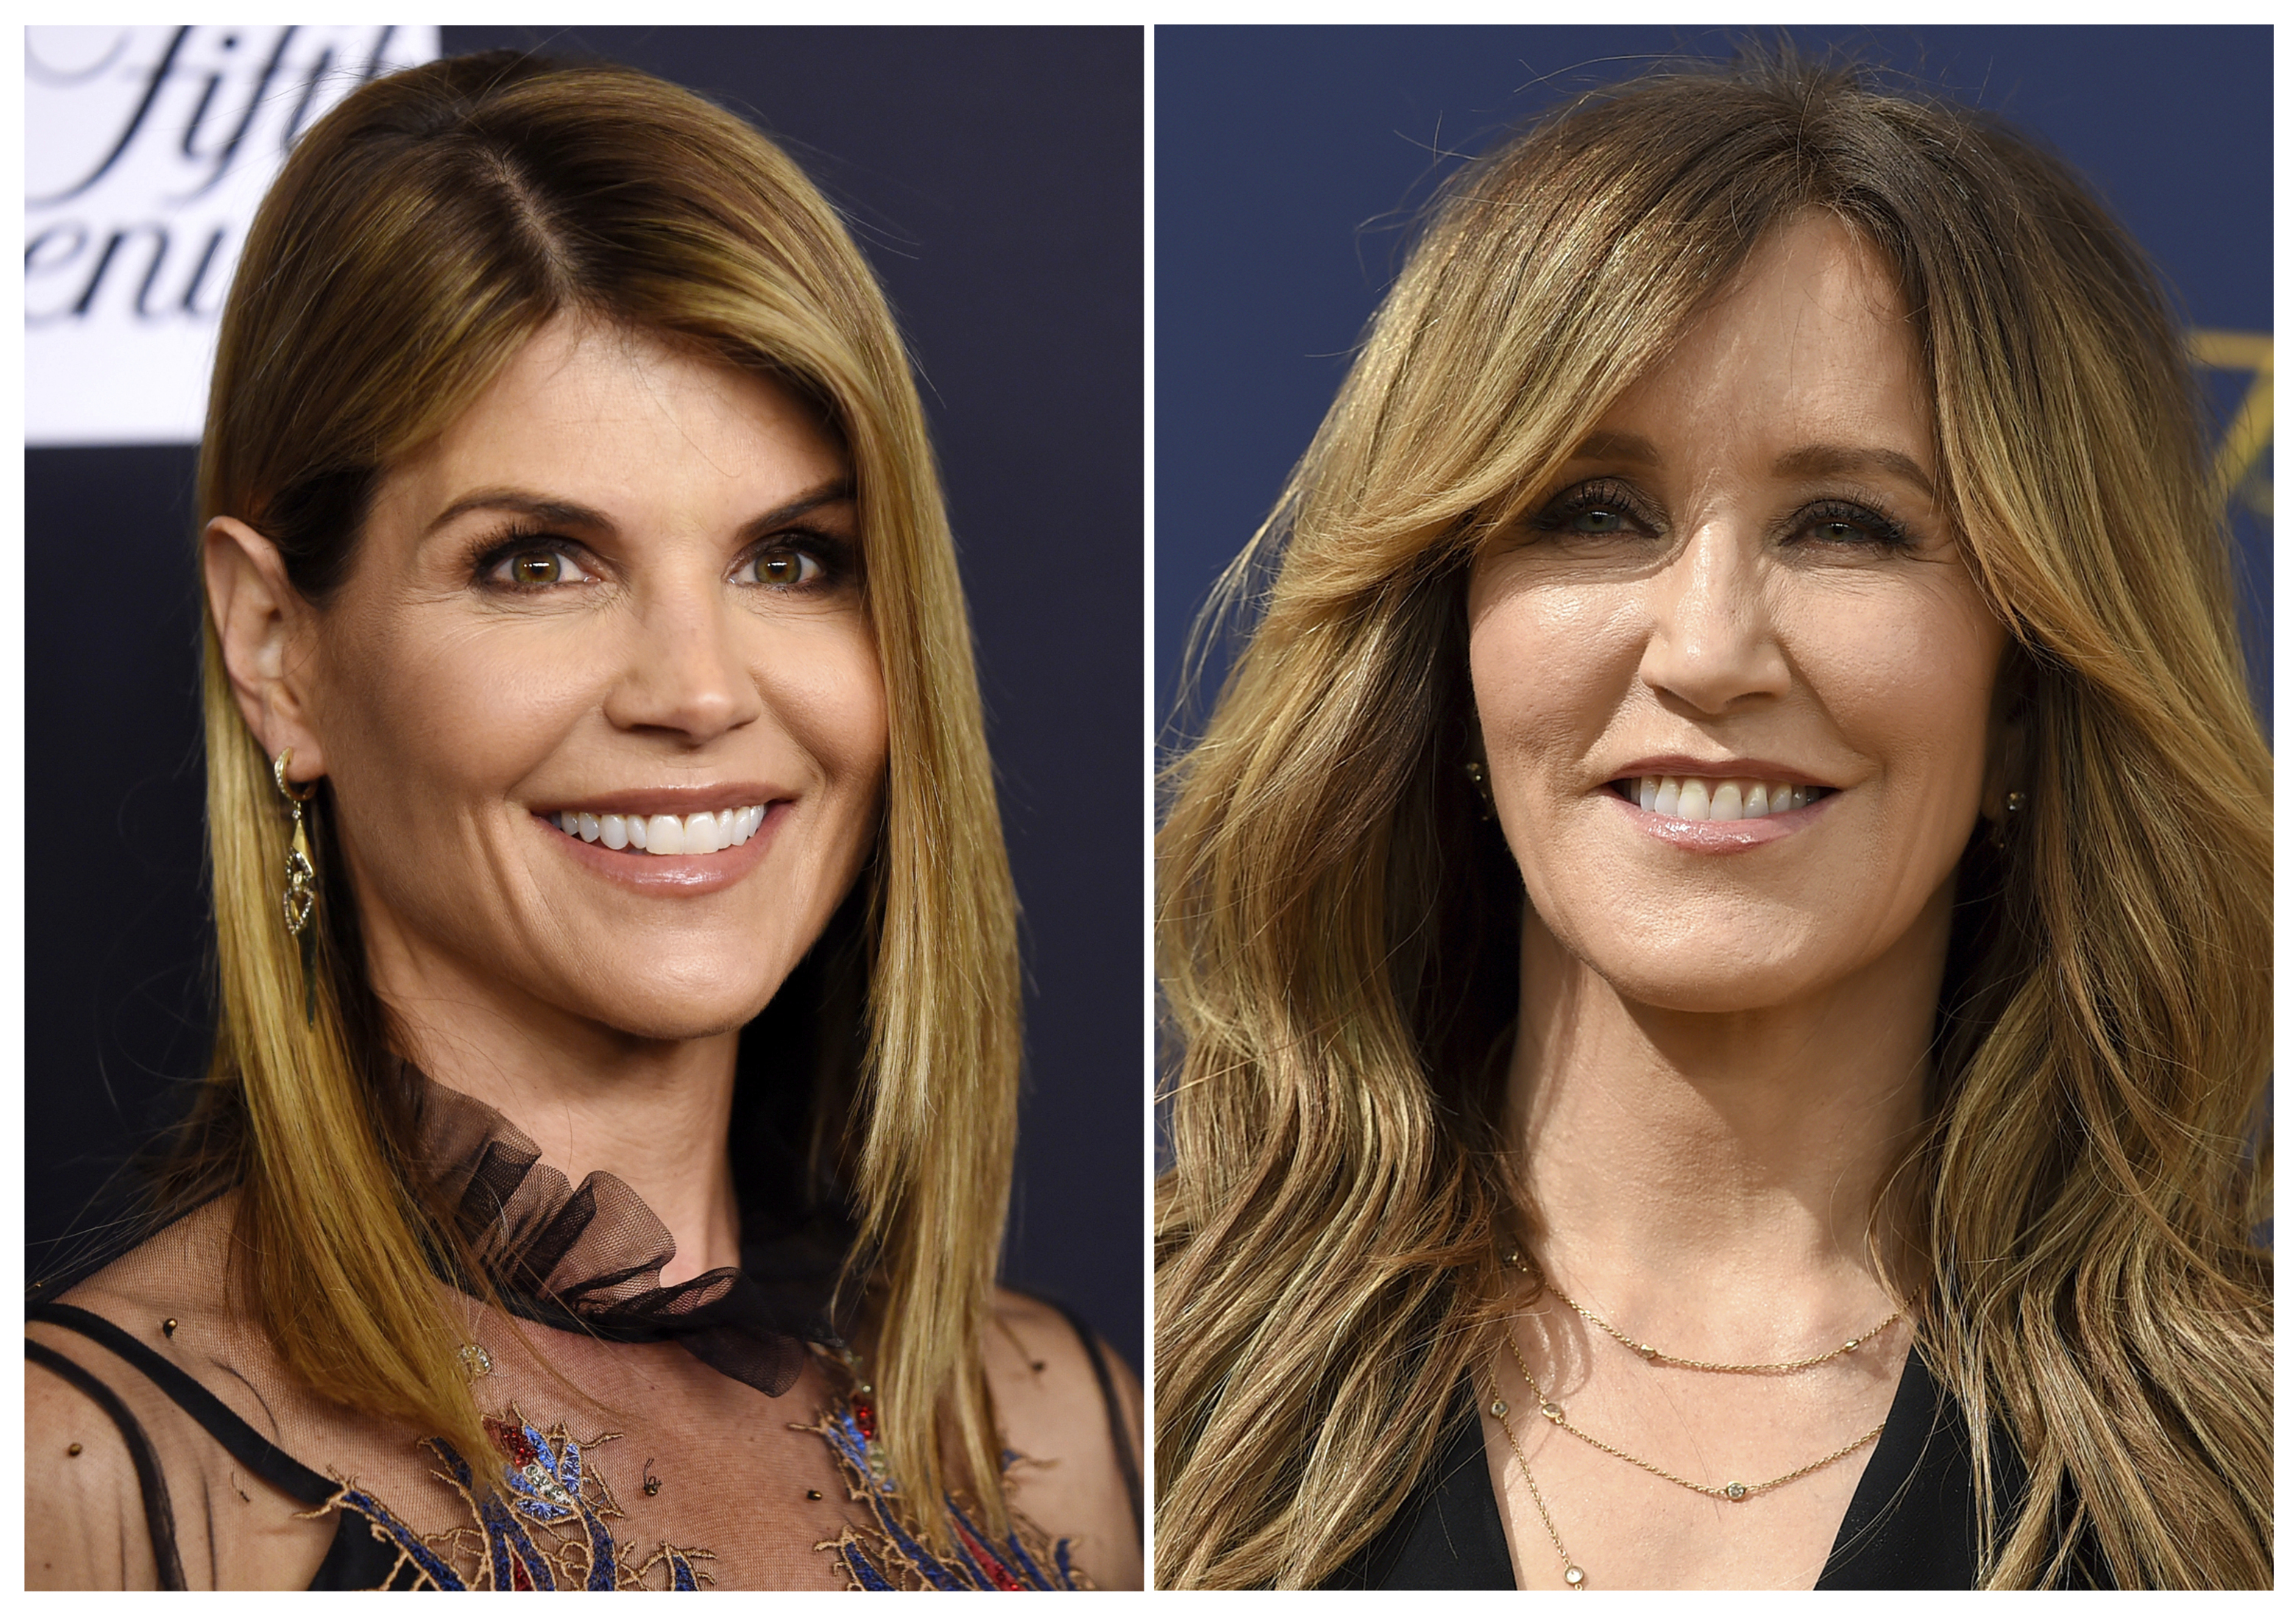 Lori Loughlin fired from Hallmark Channel as her alleged role in